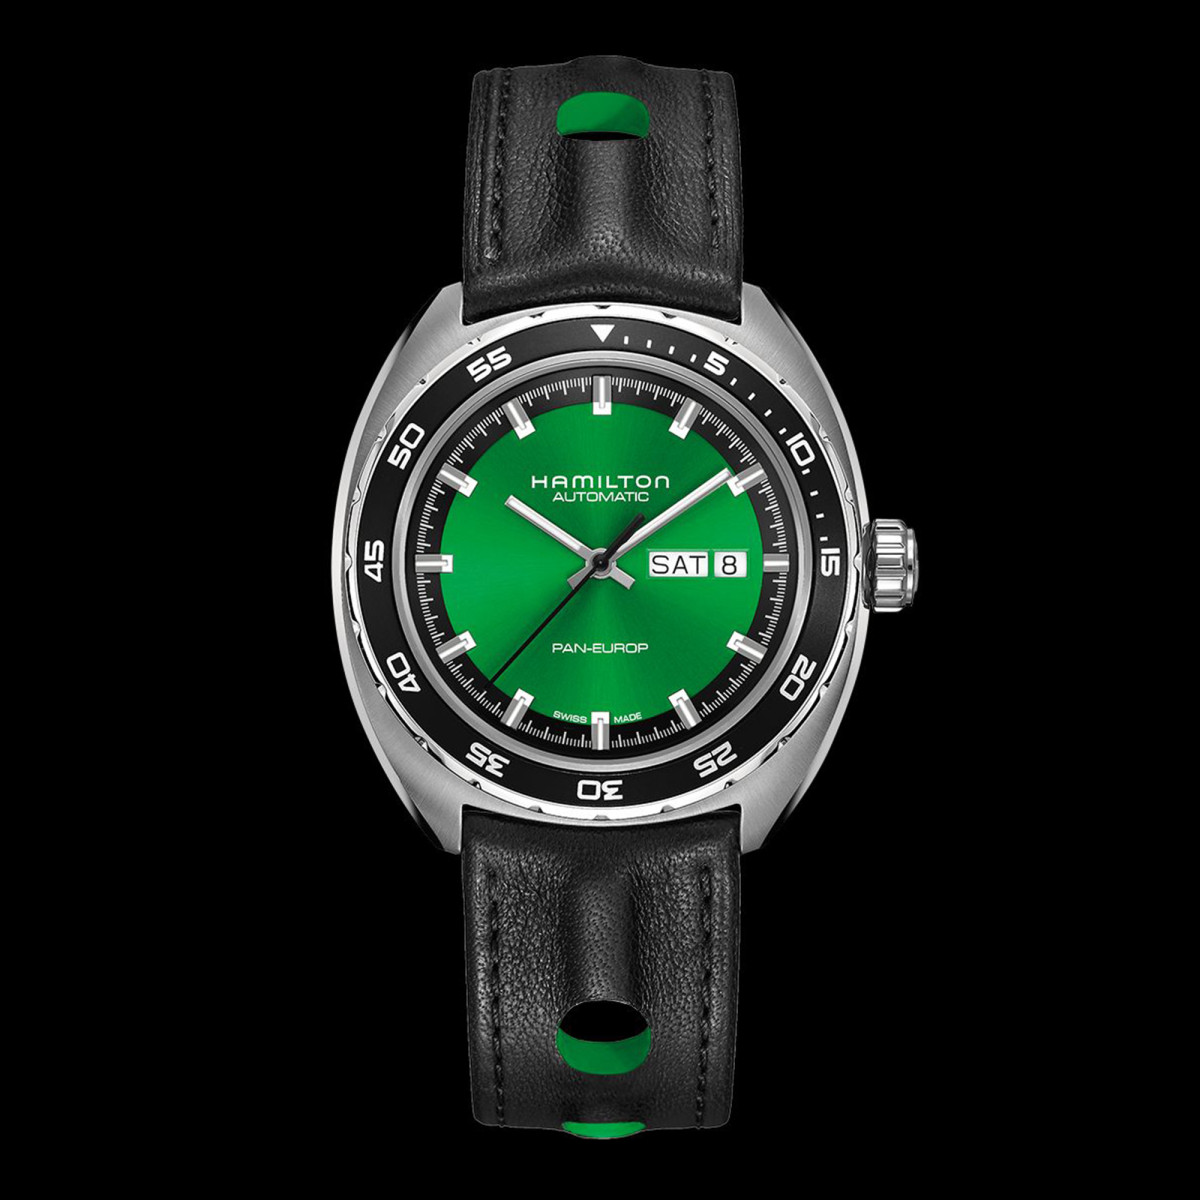 Hamilton S Pan Europ Turns Green In Its Latest Re Release